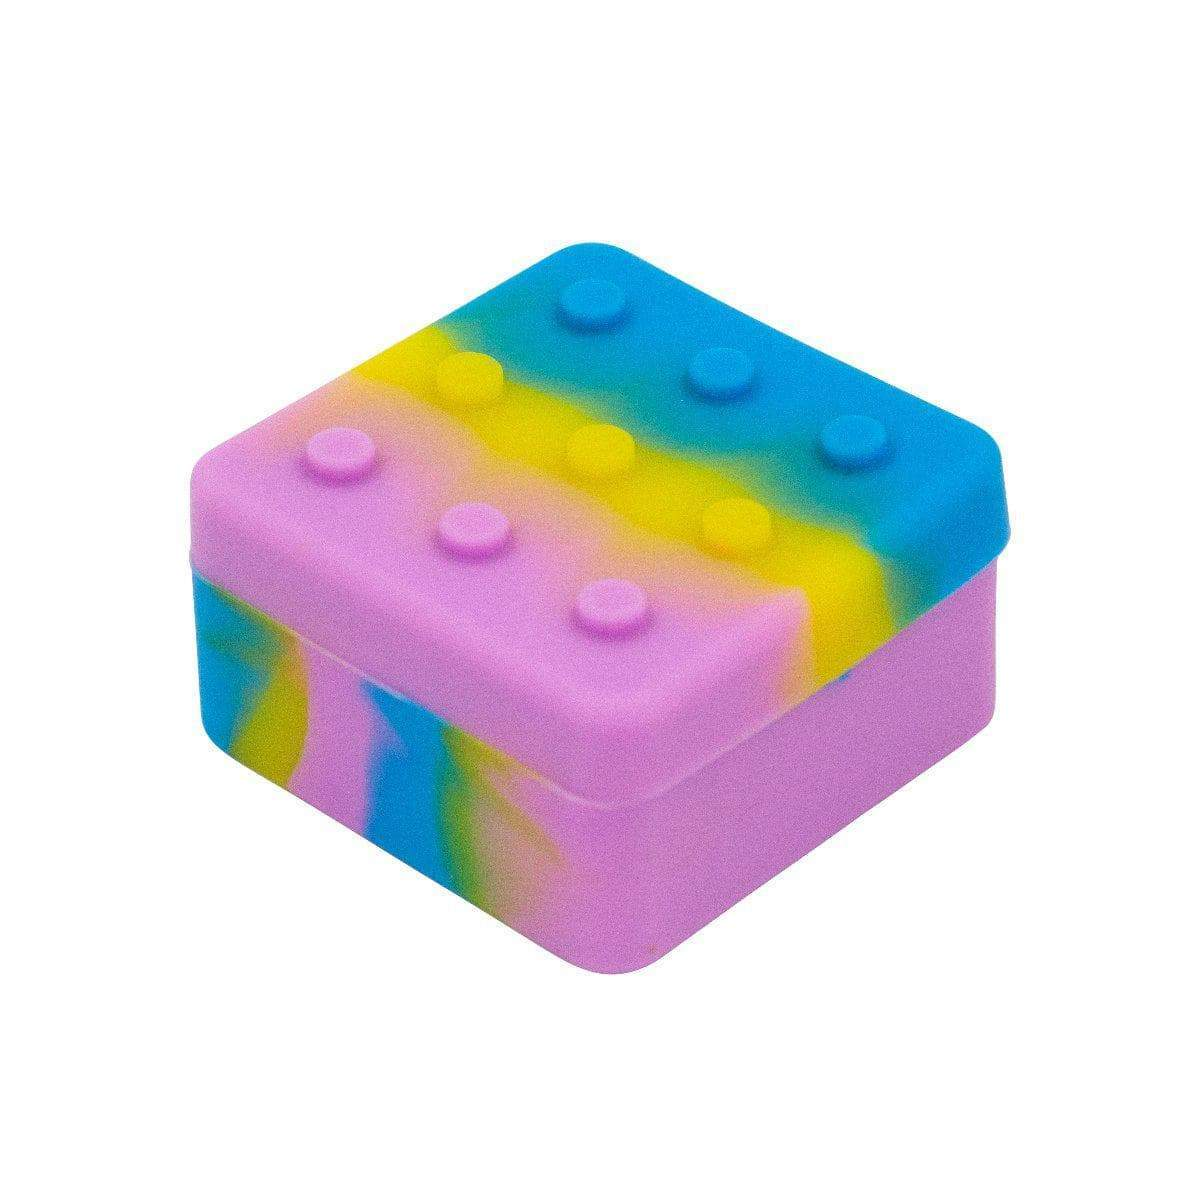 Lego Block Silicone Wax Container